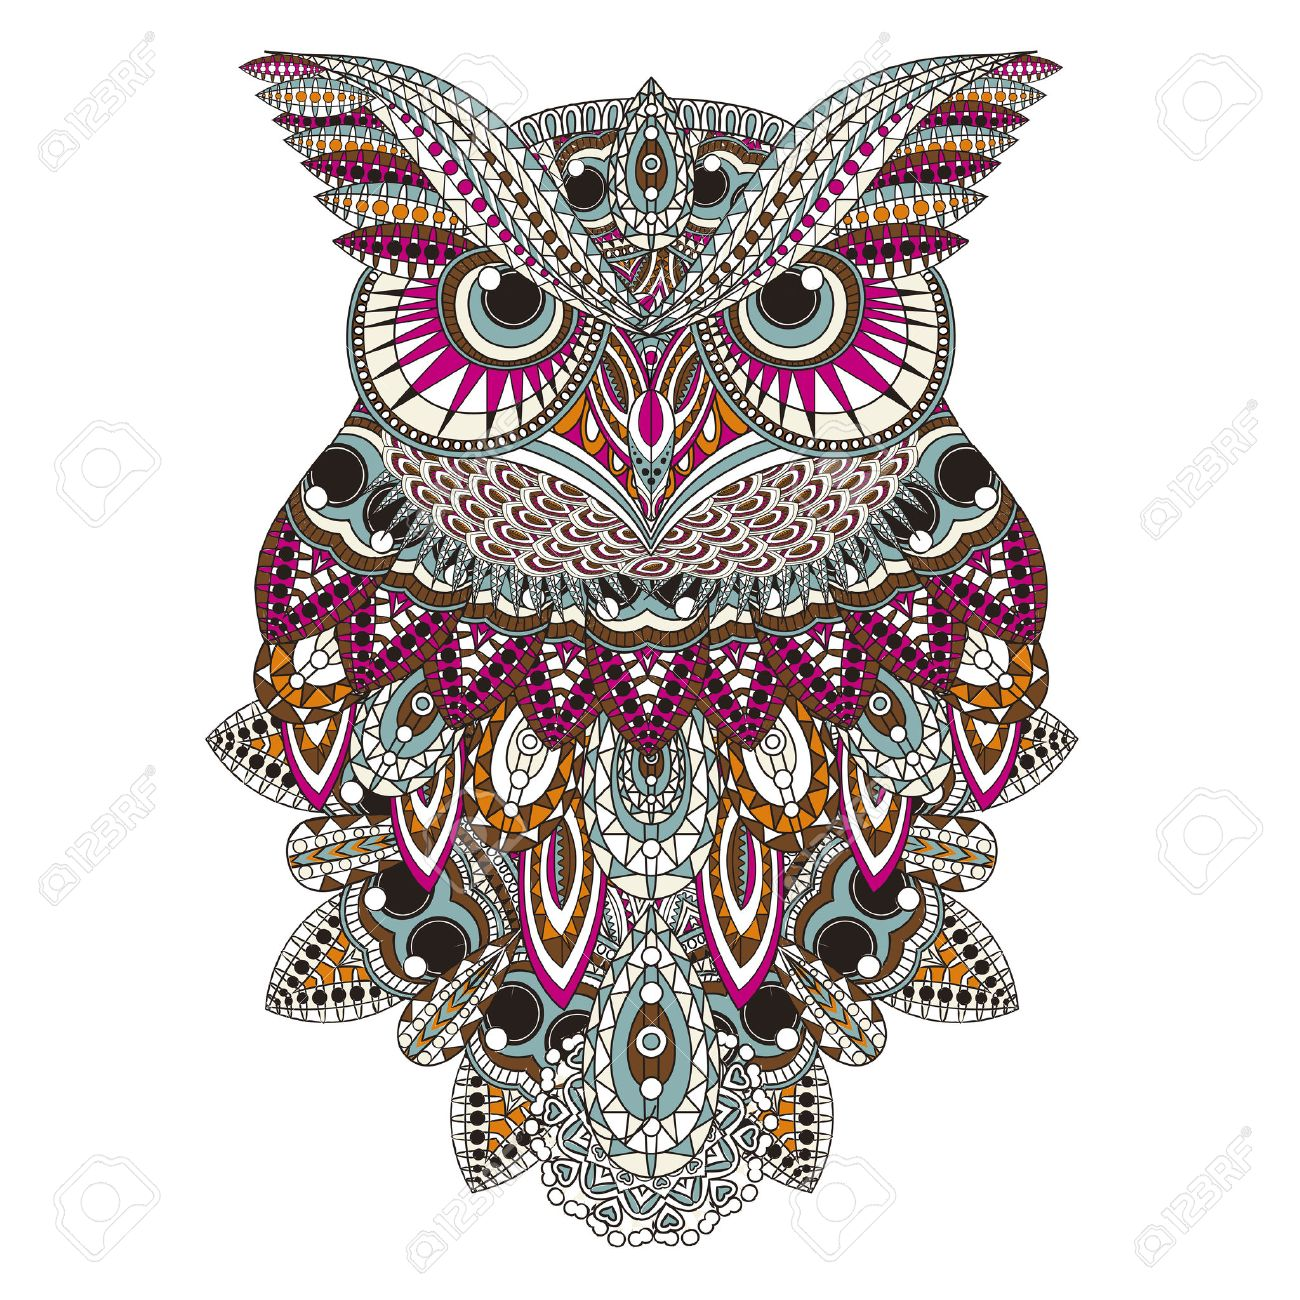 Sumptuous Owl Coloring Page In Exquisite Style Stock Vector